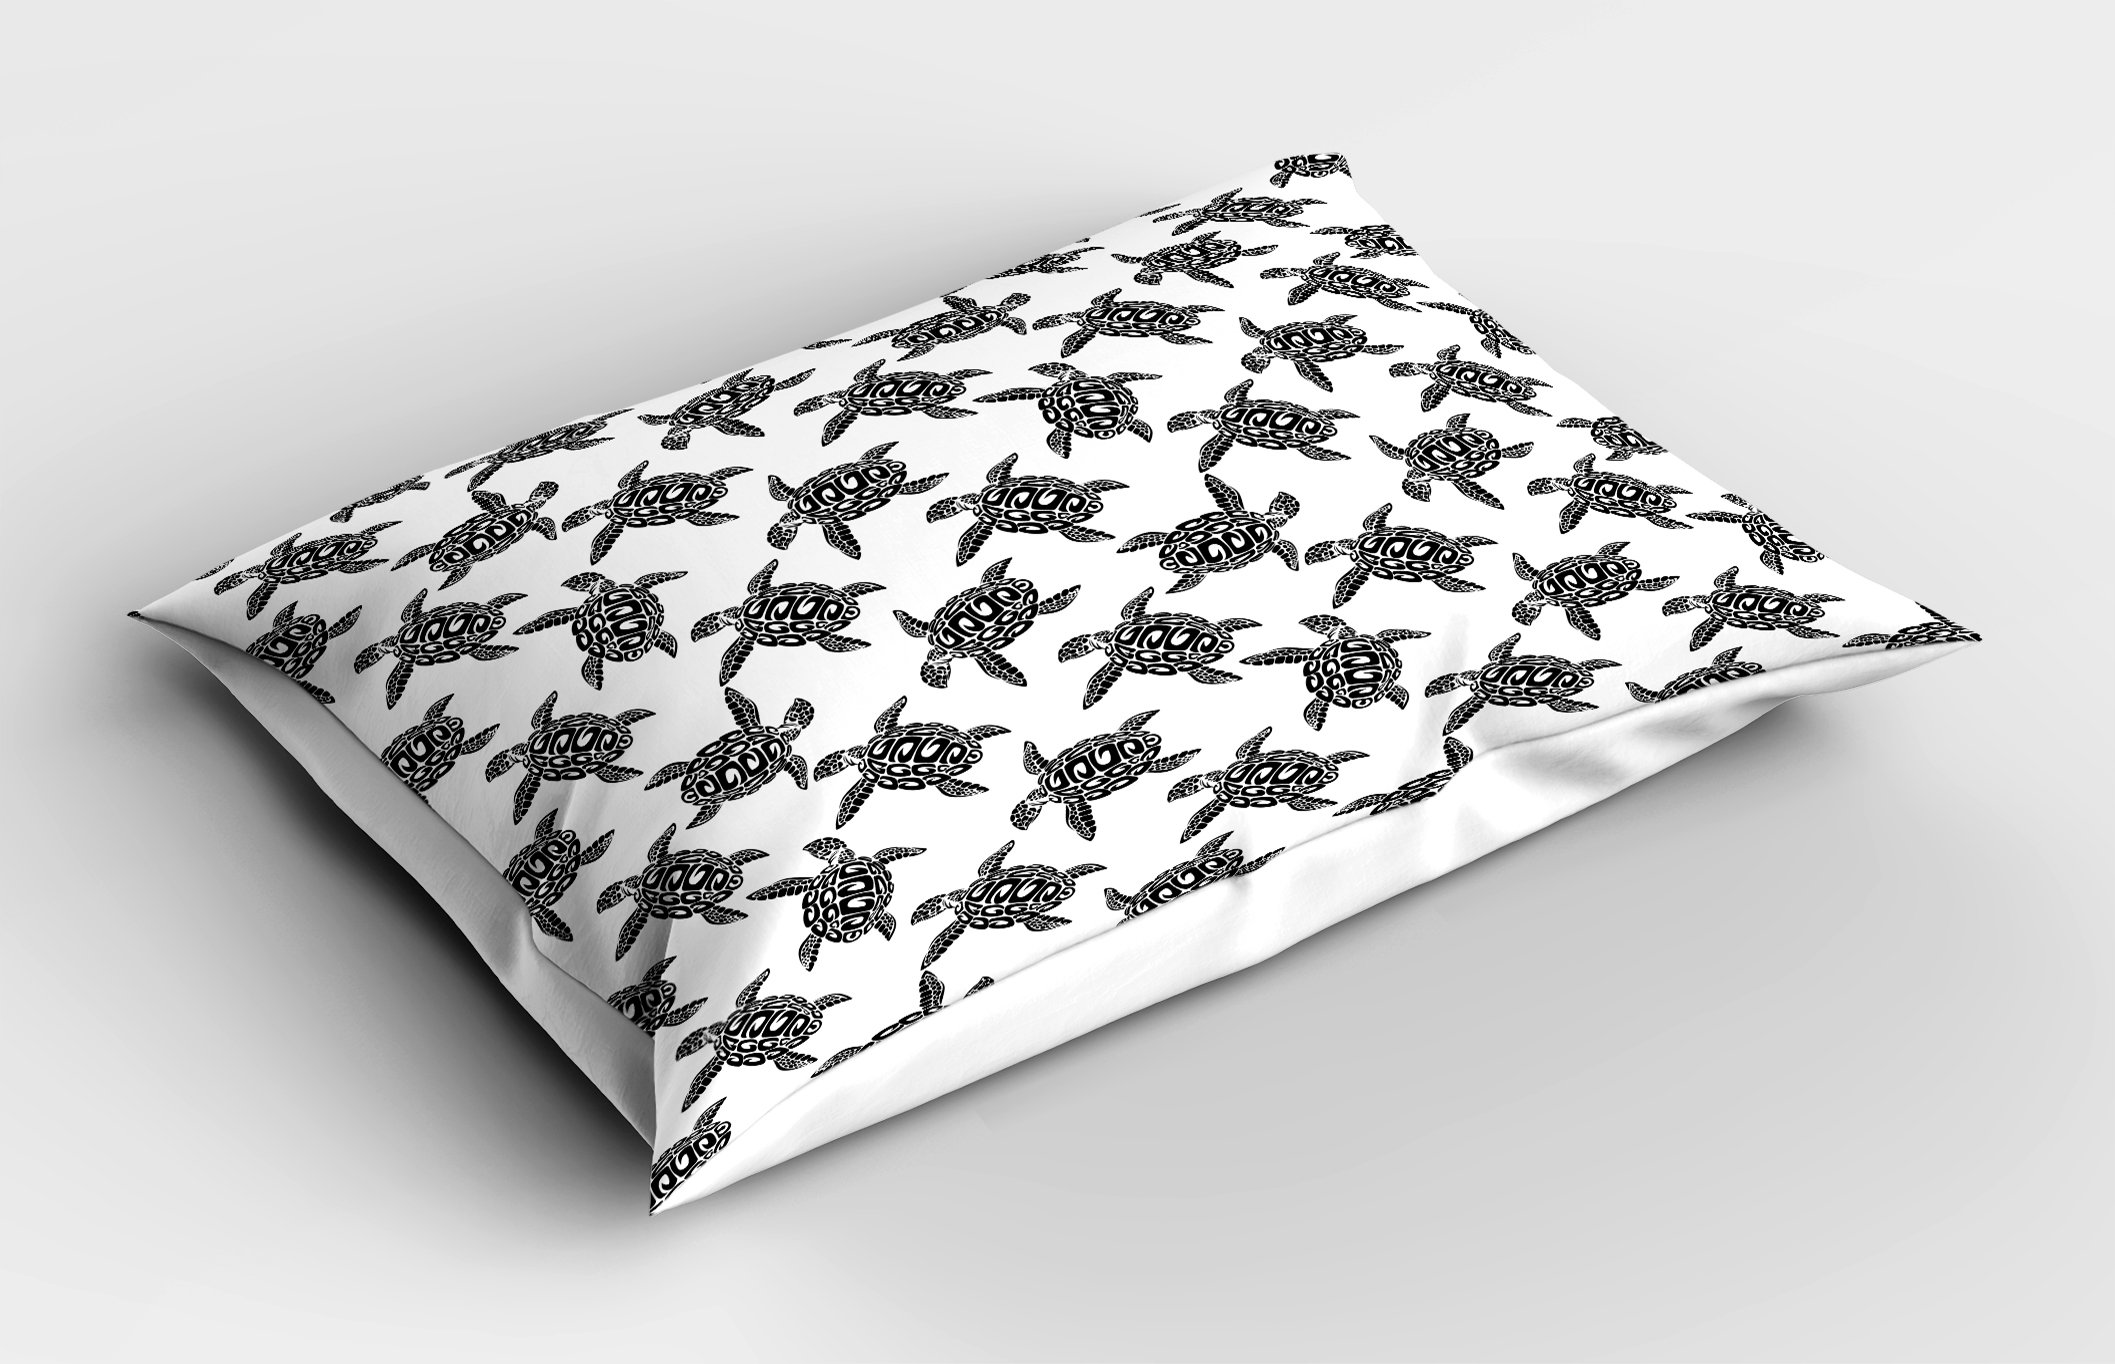 Lunarable Sea Animals Pillow Sham, Monochrome Illustration of Swimming Marine Sea Turtles with Tribal Details, Decorative Standard Queen Size Printed Pillowcase, 30 X 20 inches, Black White by Lunarable (Image #2)